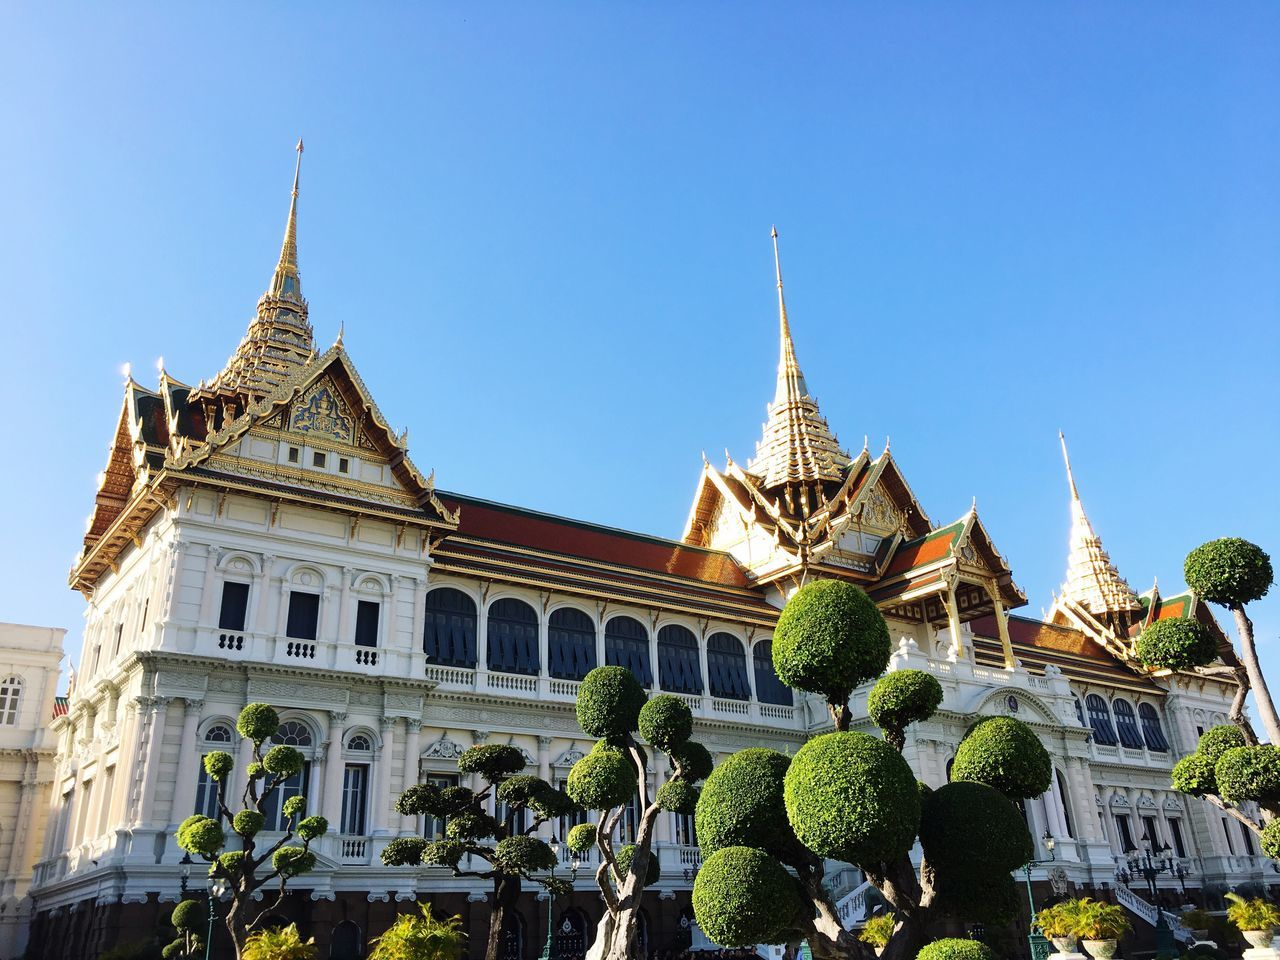 Thailand Grand Palace Bangkok Thailand I Was Born In The Reign Of King Rama9